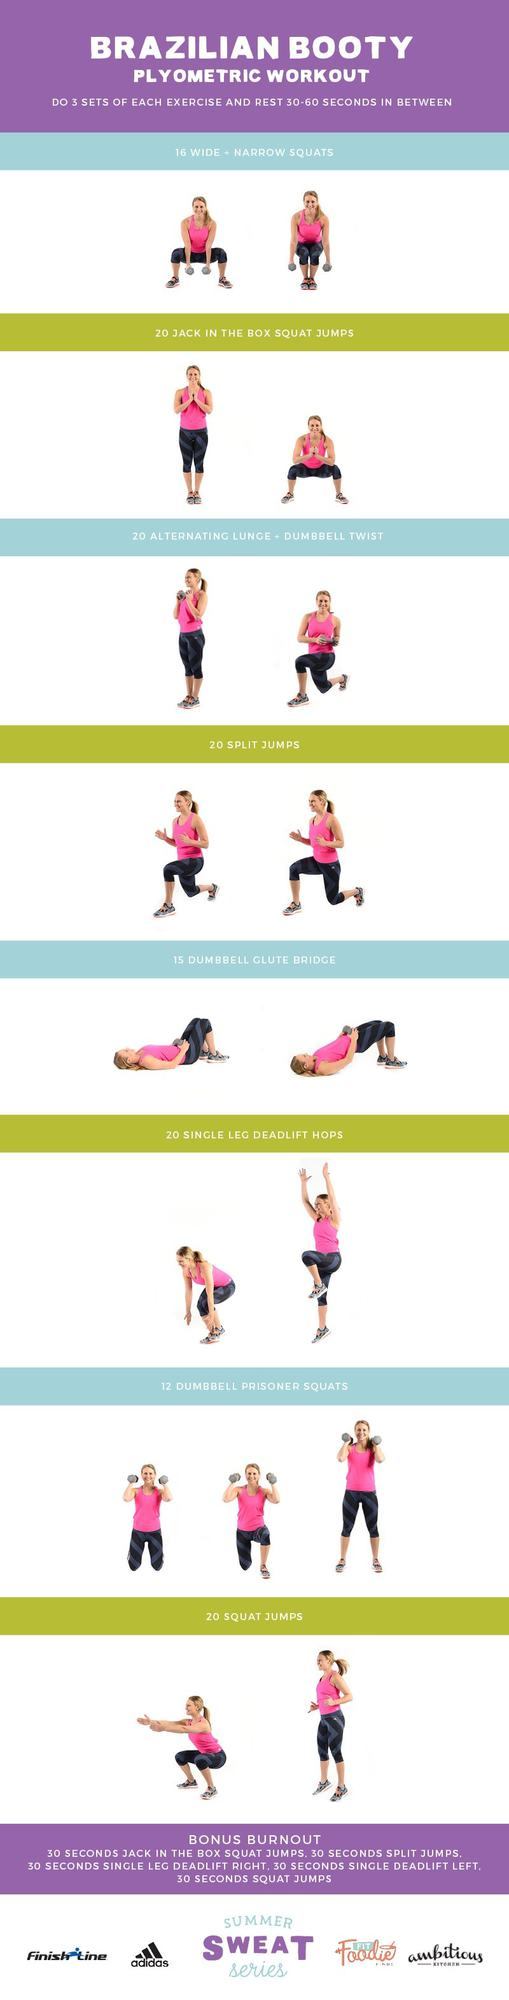 This Brazilian Booty Workout mixes lower body strength training with plyometric movements for the ultimate lower body burn!